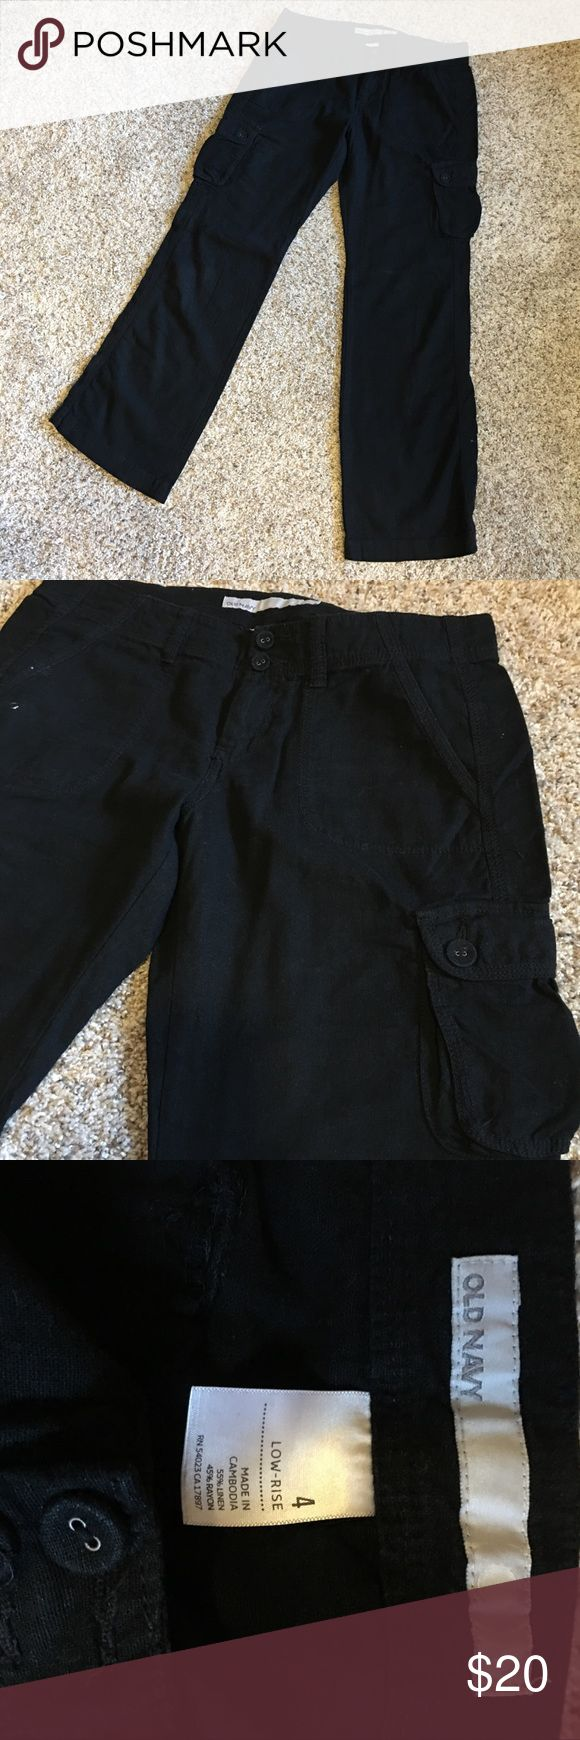 Old Navy Linen Cargo pants EUC These are awesome black Linen pants! Great quality with tons of wear left in them!! Old Navy Pants Straight Leg